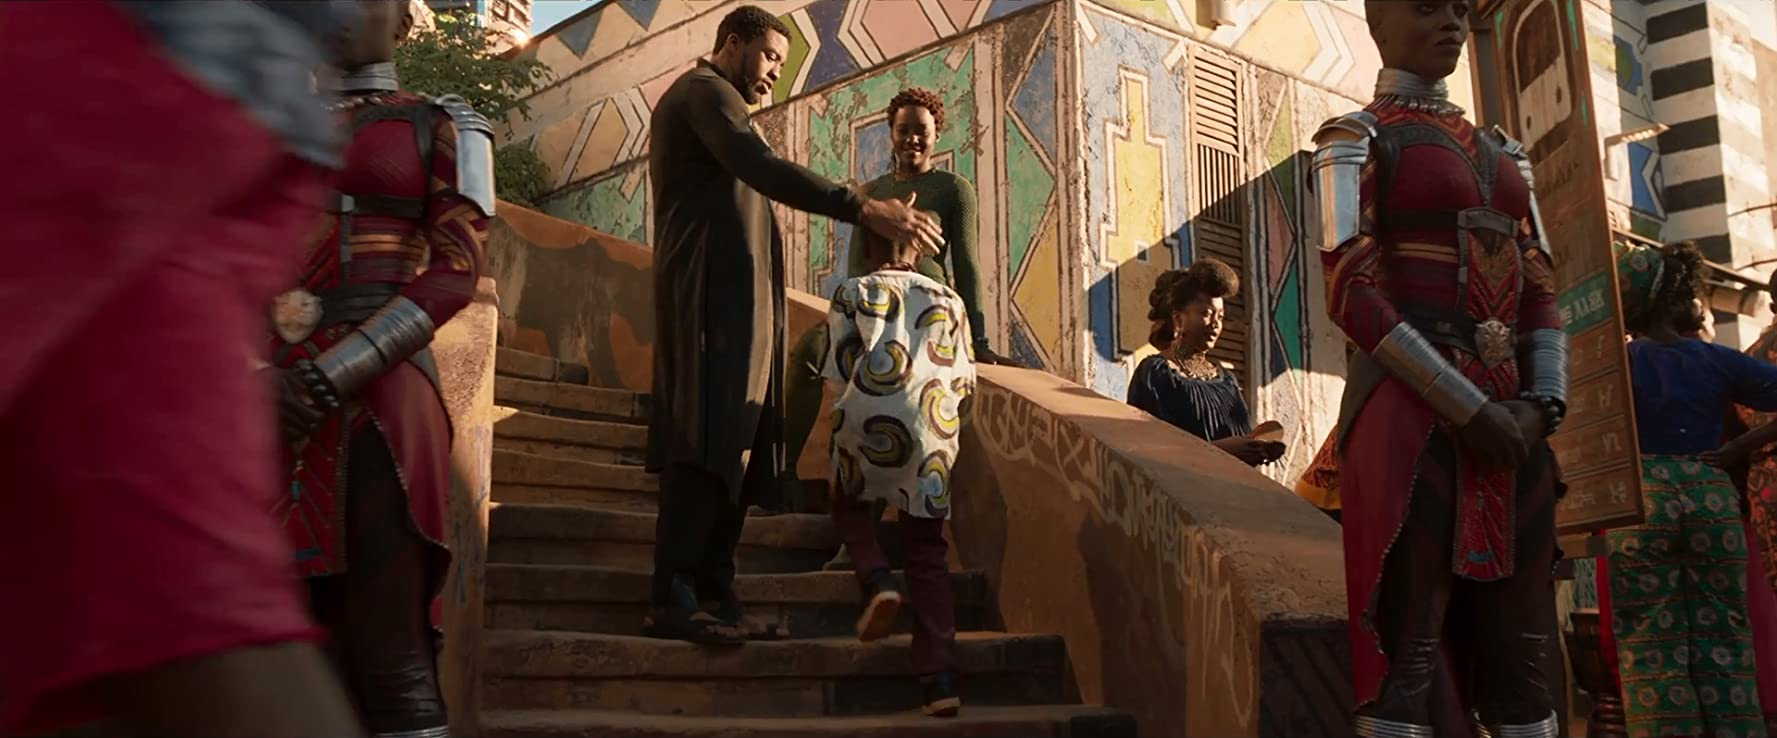 Florence Kasumba, Chadwick Boseman, and Lupita Nyong'o in Black Panther (2018)